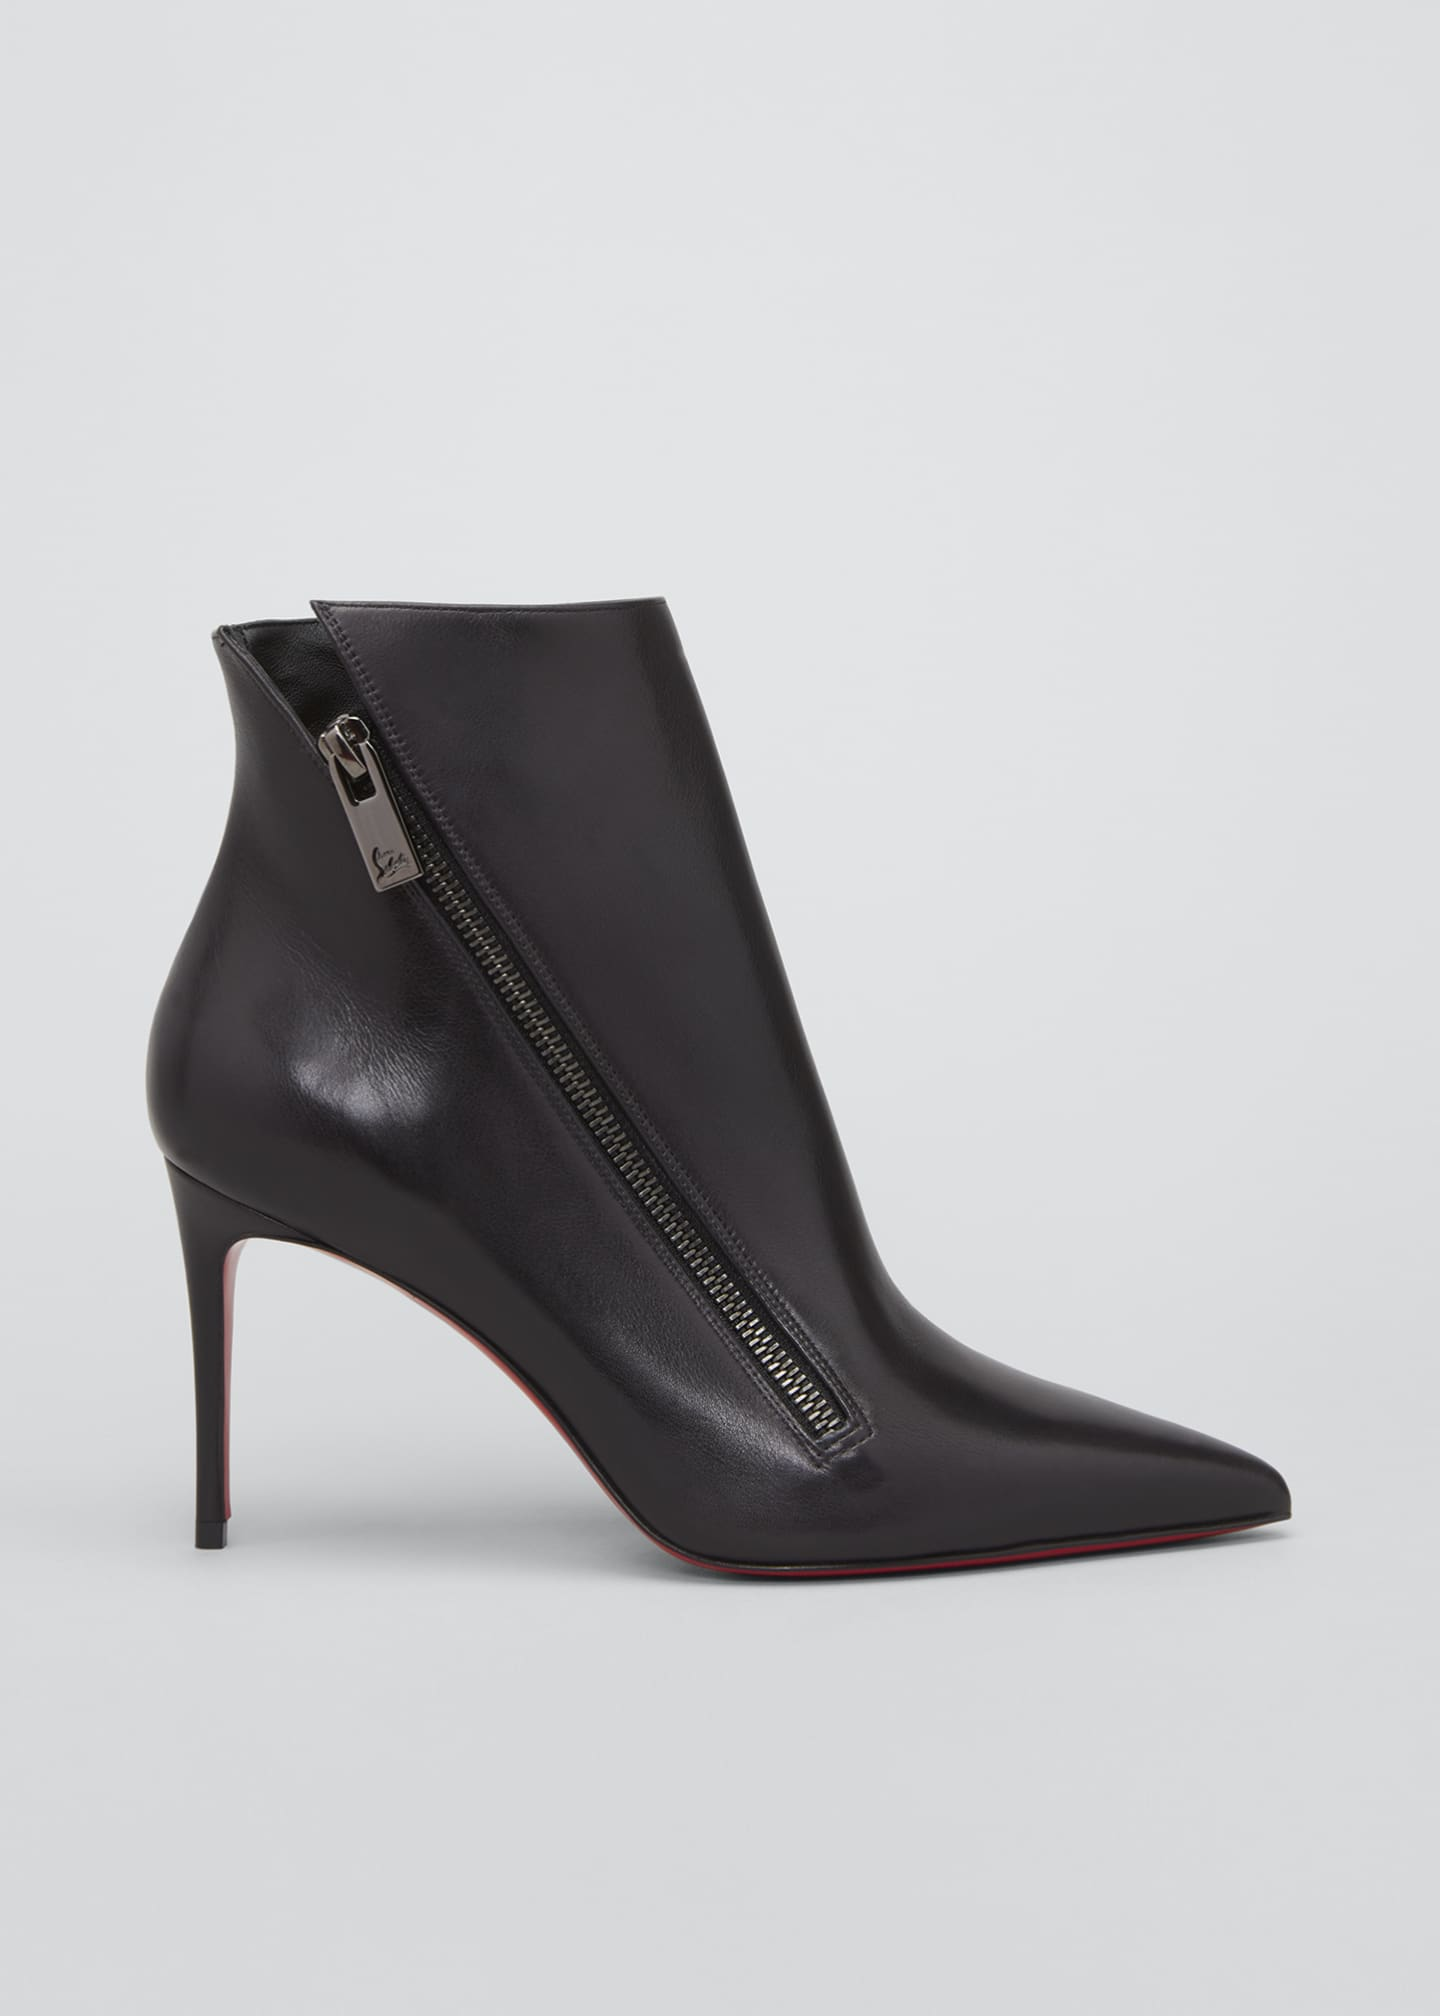 Image 1 of 3: Birigkate Sleek Zip Red Sole Booties